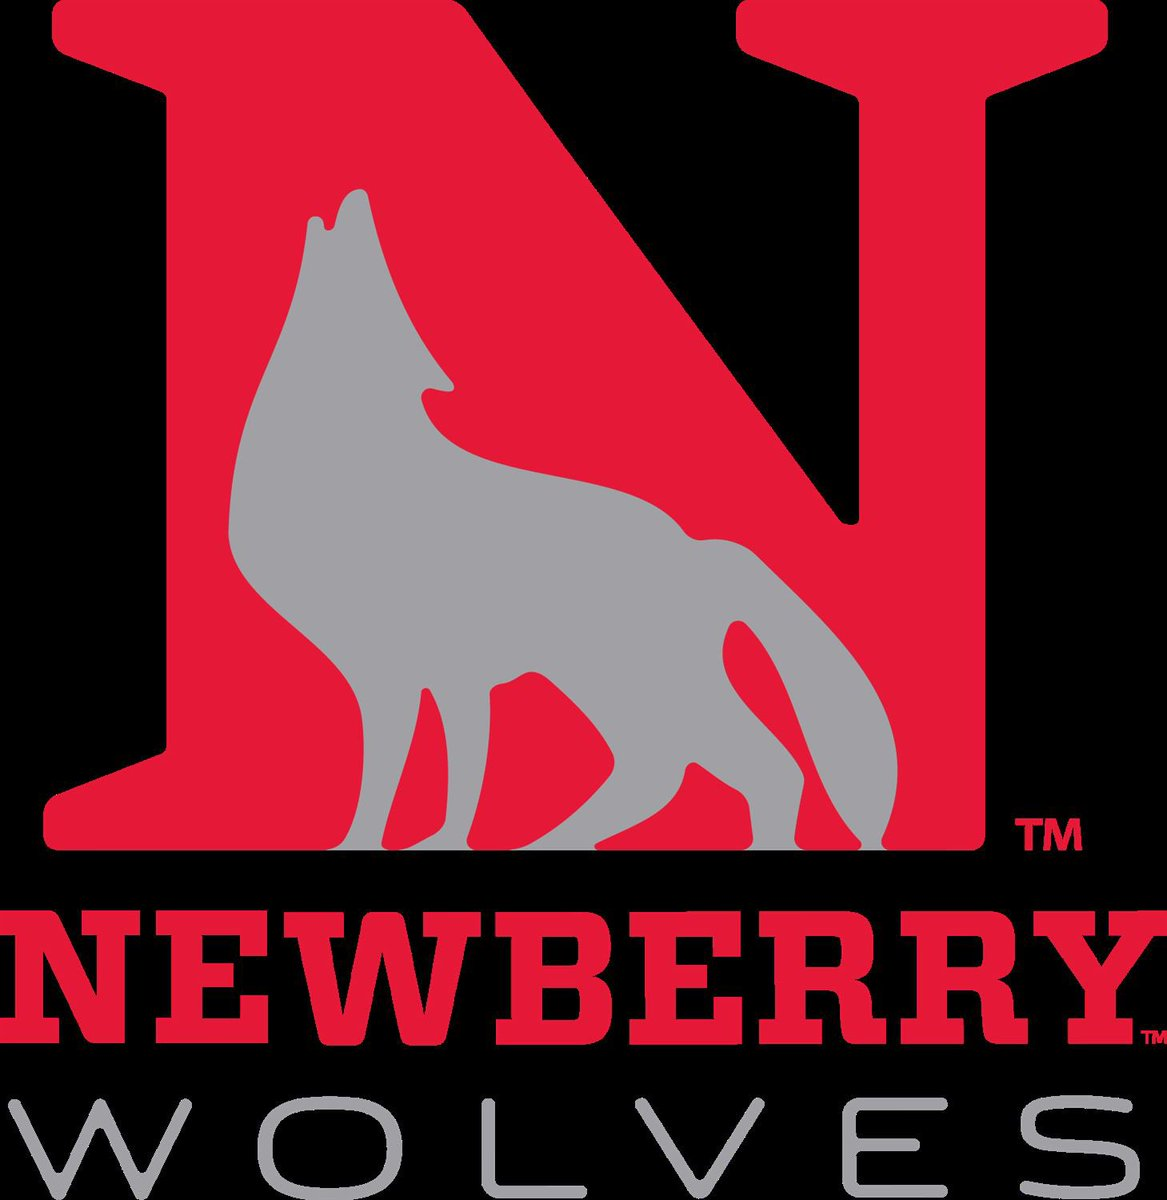 Greatly appreciate my college teammate and now great coach @coachzedmunds from Newberry College for stopping by and checking out our talent at Crestwood High School! #recruitcrestwood #knightcity #shieldsup @CwoodFootball96 @Newberry_FB